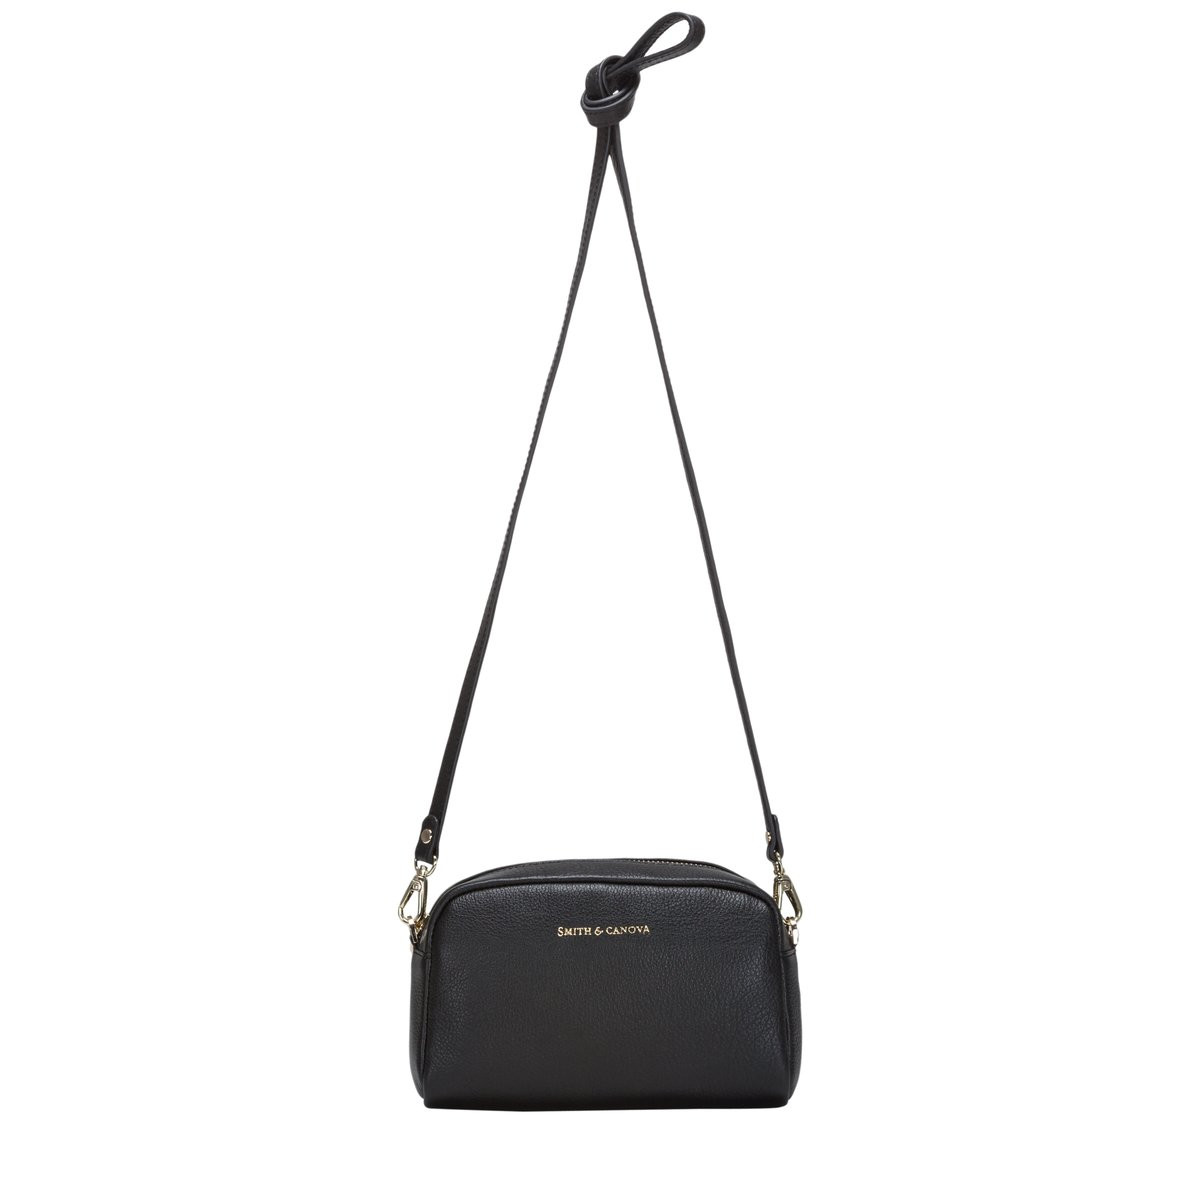 Small Zip Top Cross-body Bag - Smith   Canova 9b1cb7ade